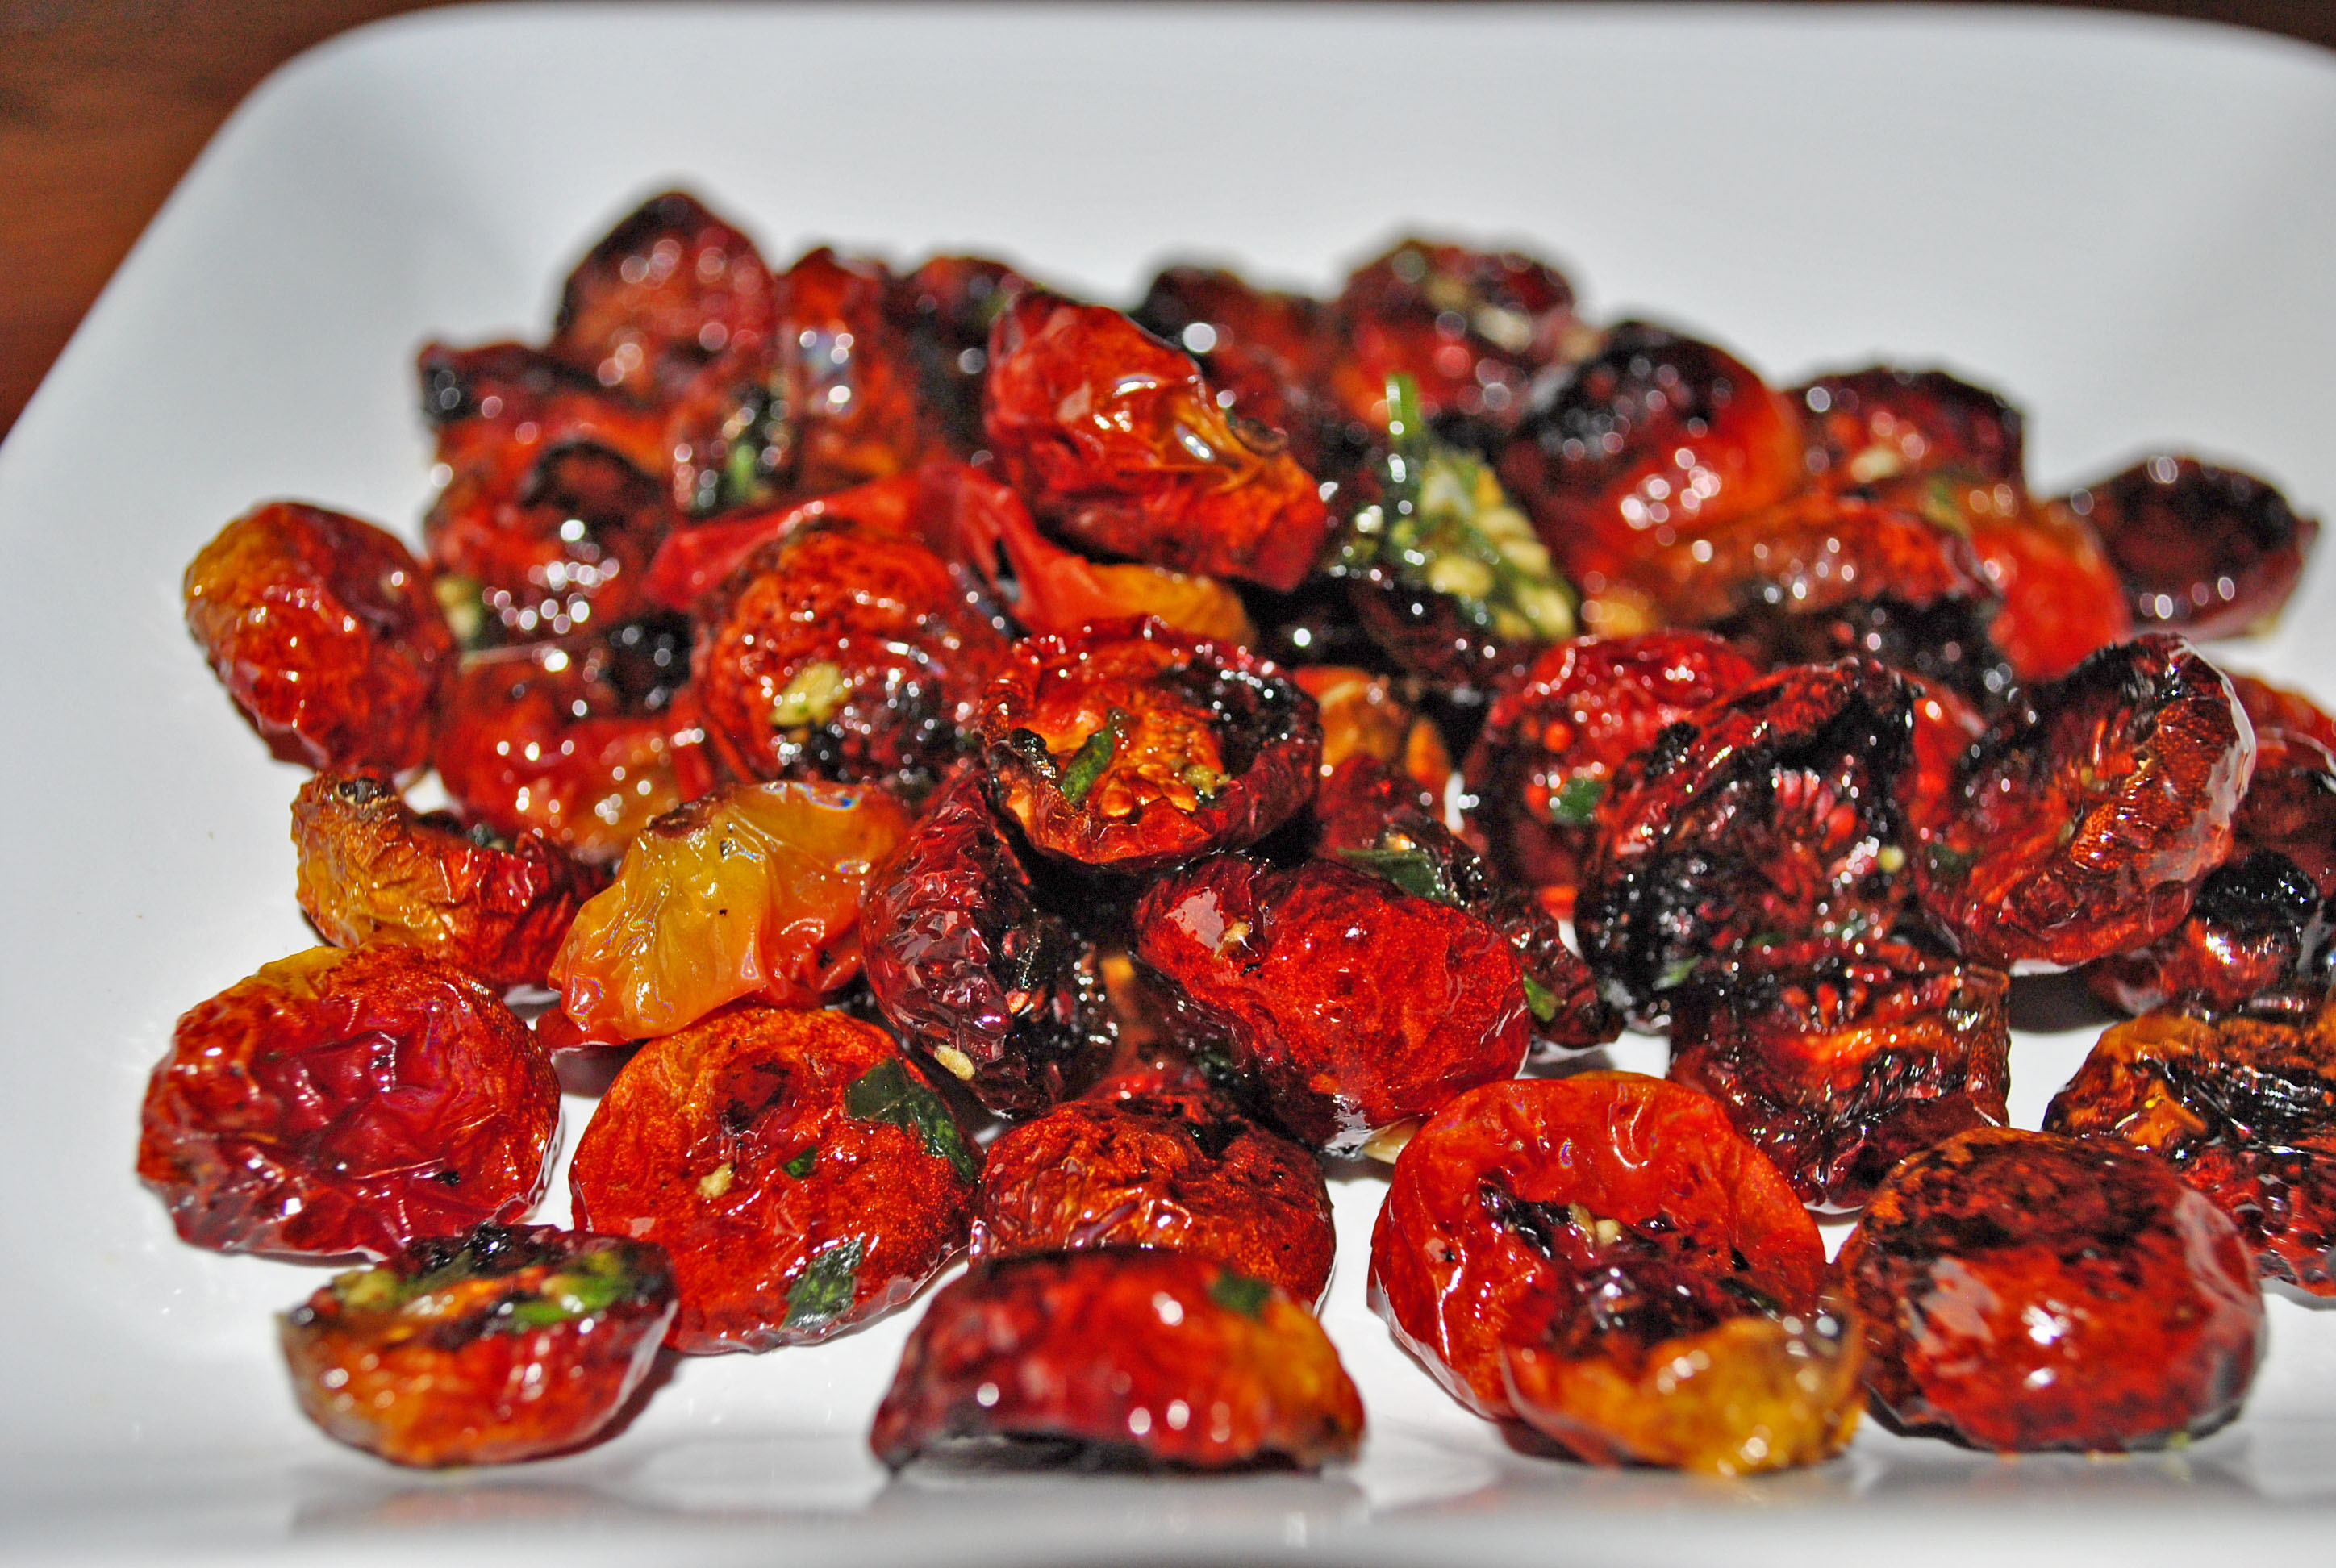 Oven Roasted Cherry Tomatoes | Meeshiesmom's Blog